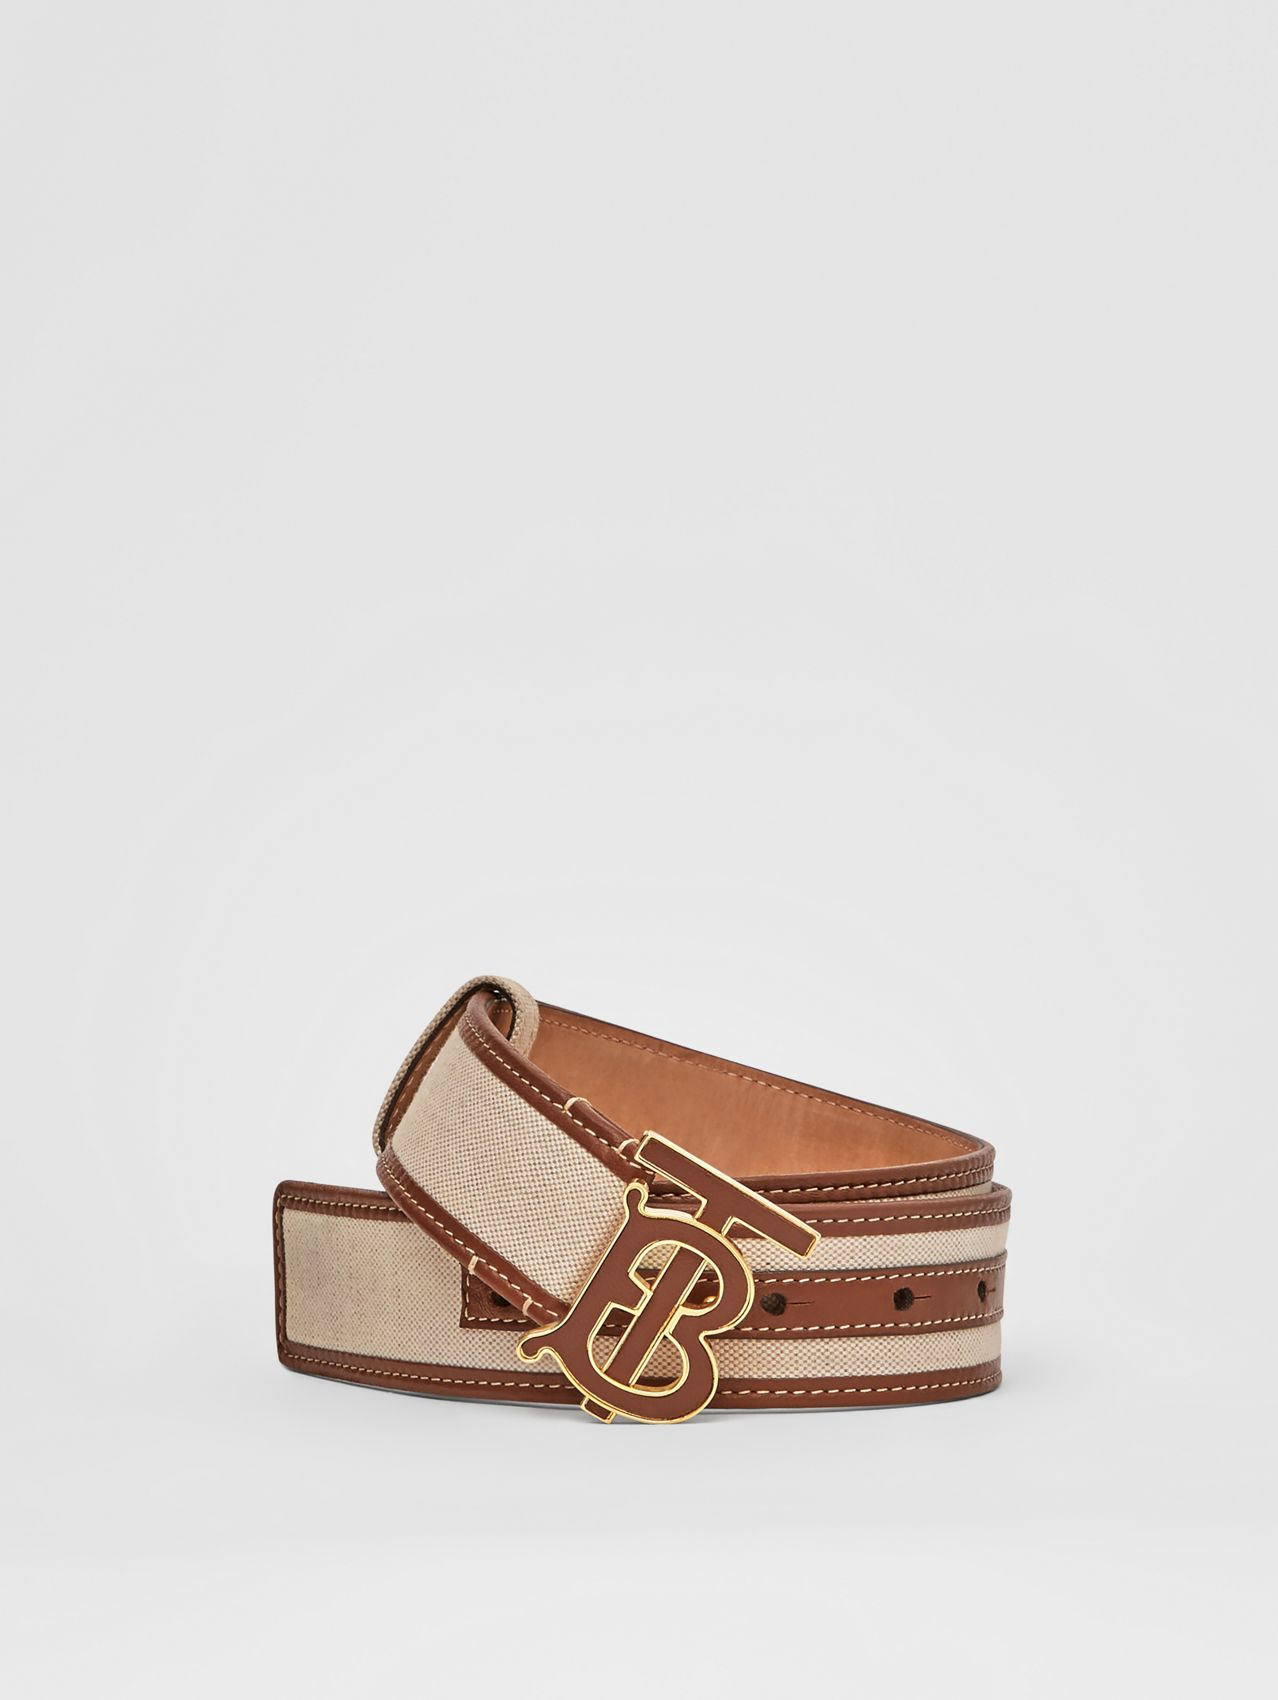 Monogram Motif Canvas and Leather Belt in Natural